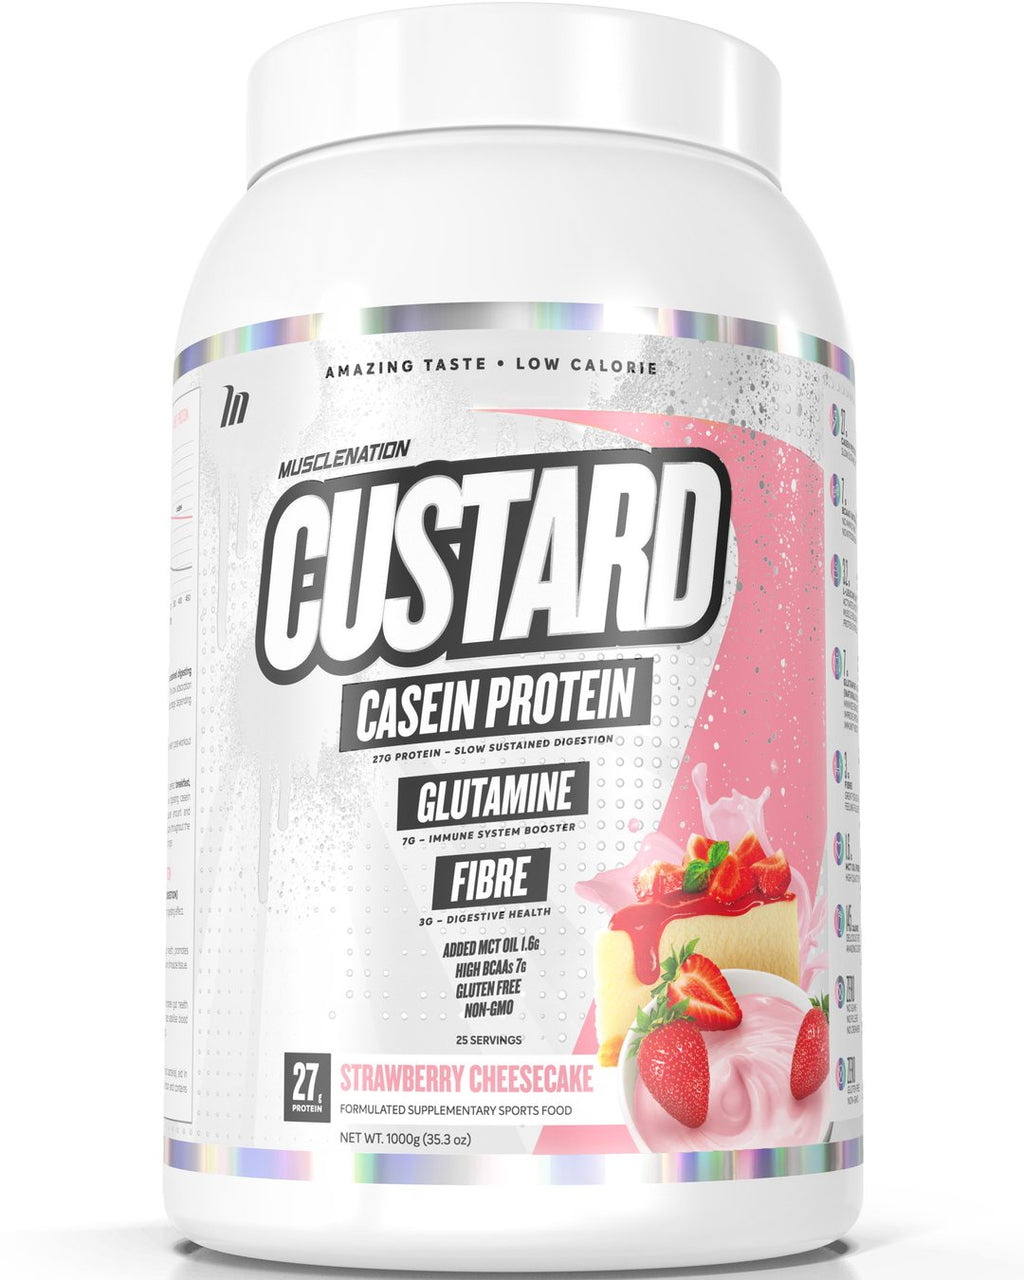 CUSTARD CASEIN PROTEIN STRAWBERRY CHEESECAKE